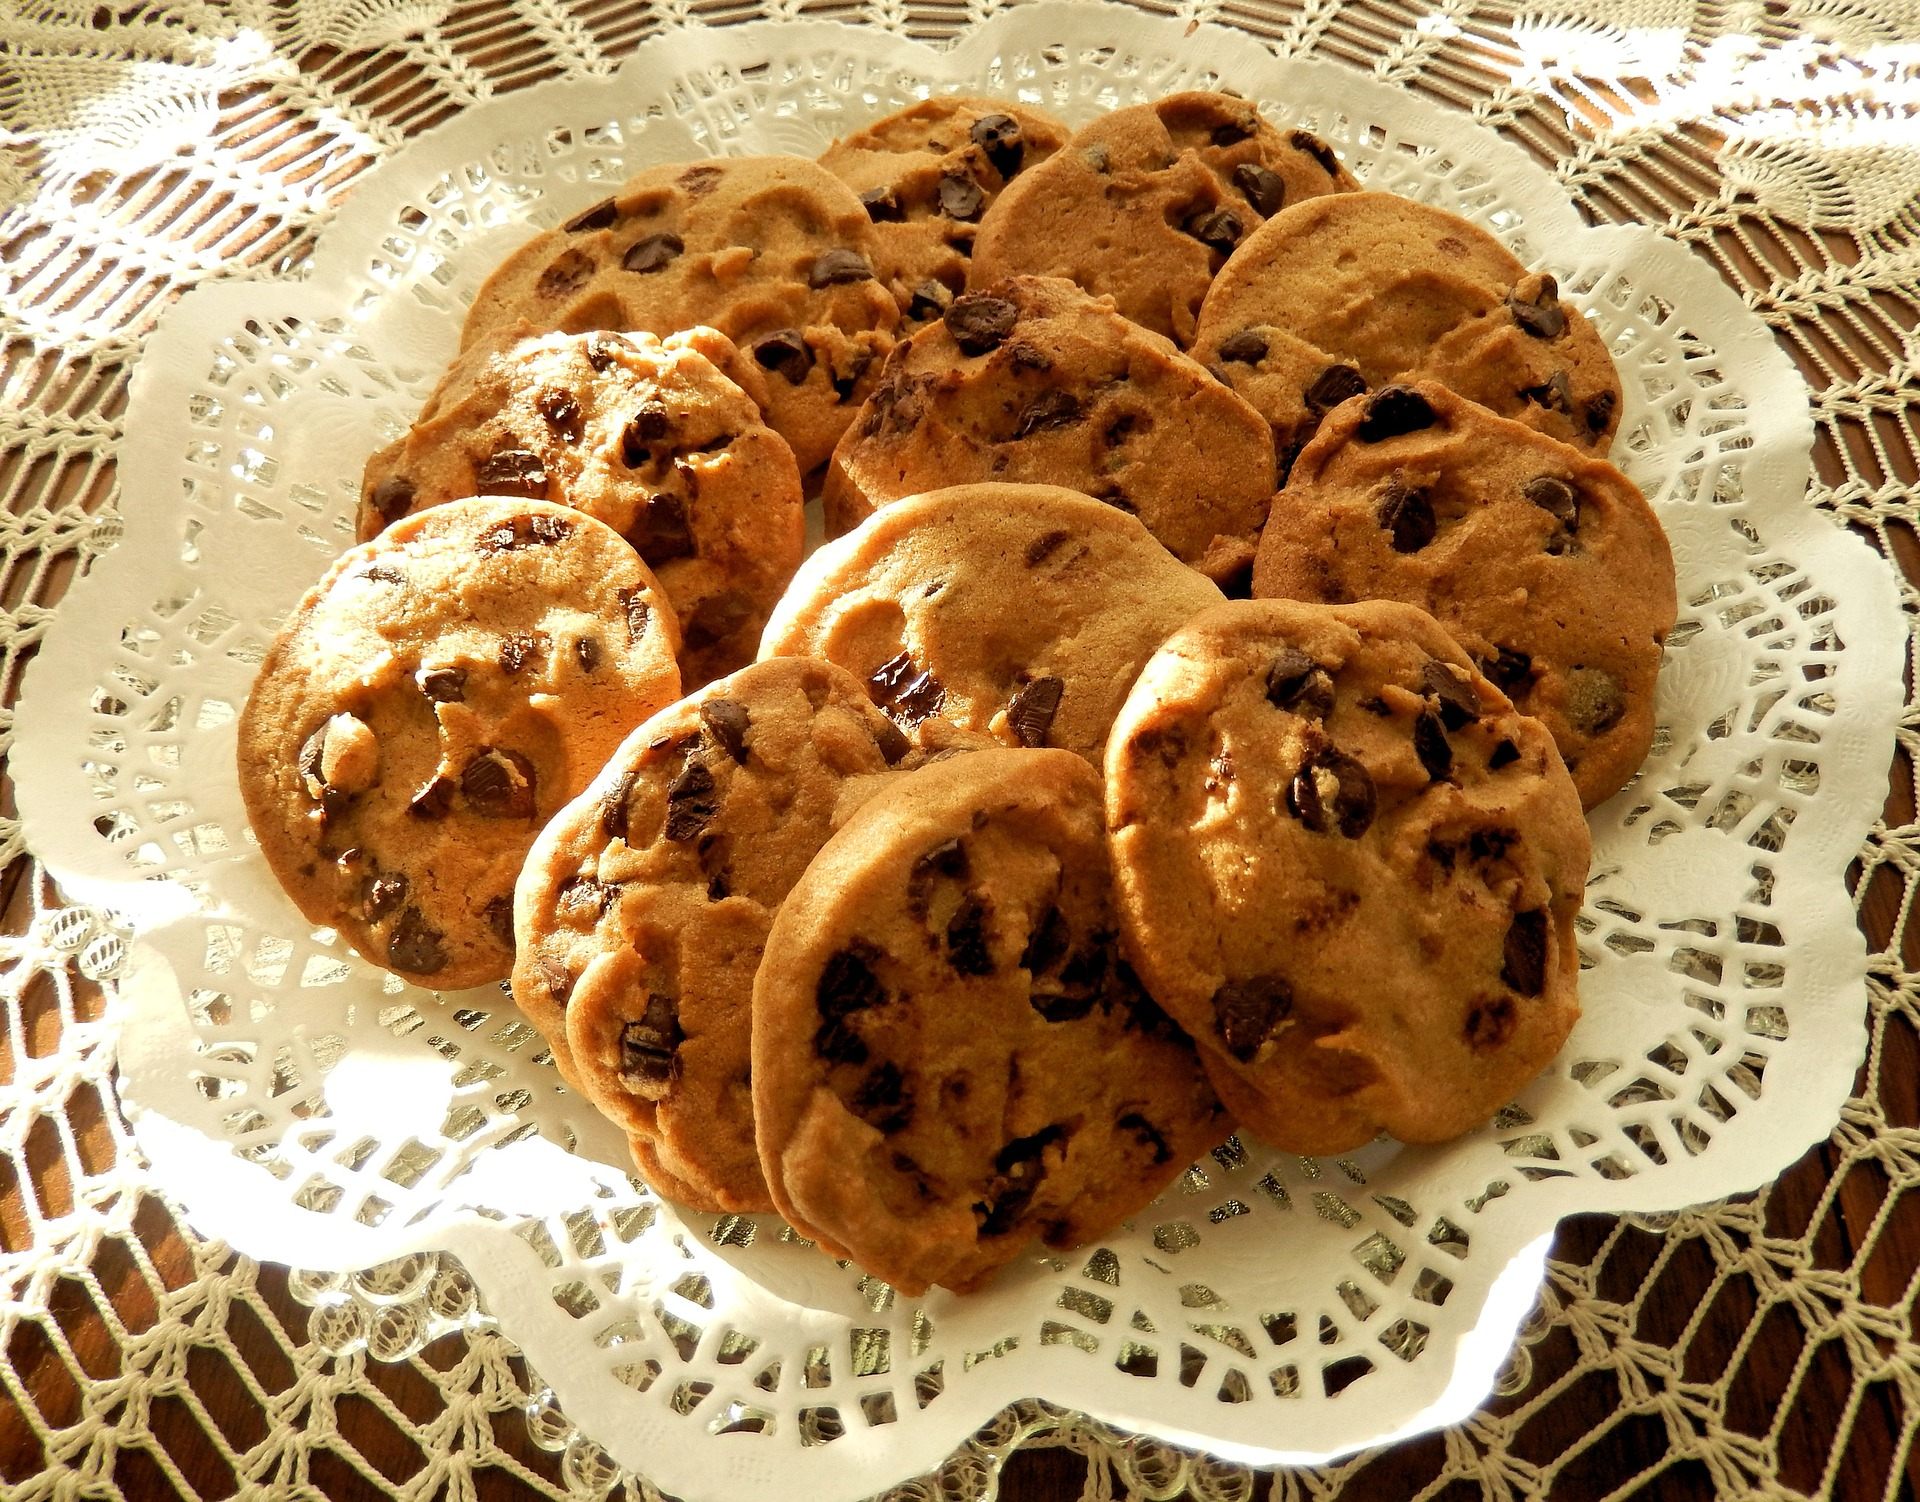 chocolate-chip-cookies-940429_1920